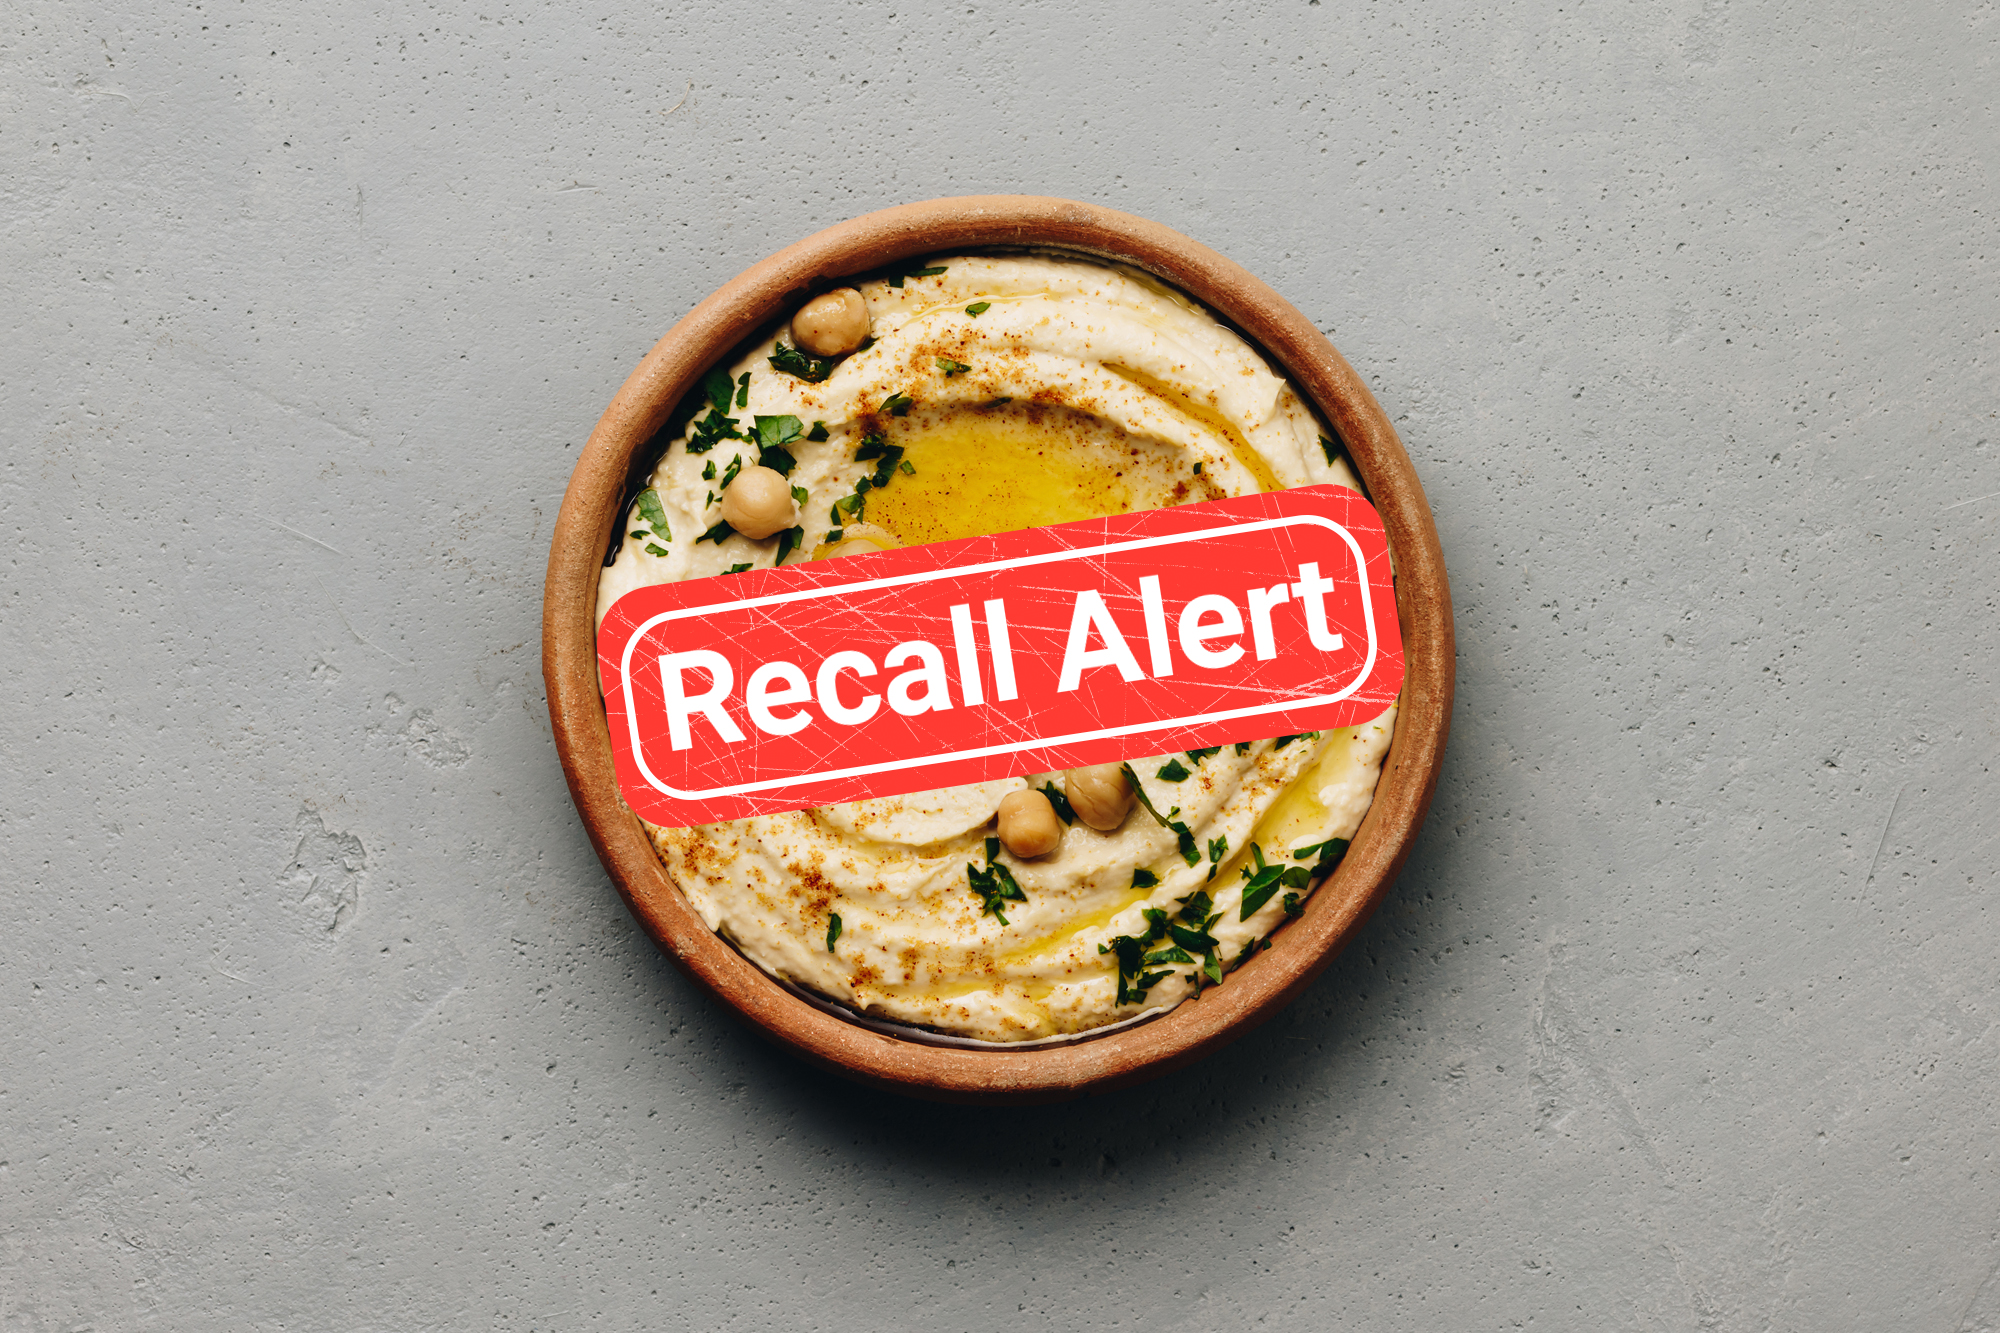 A bowl of hummus with a recall alert button over it